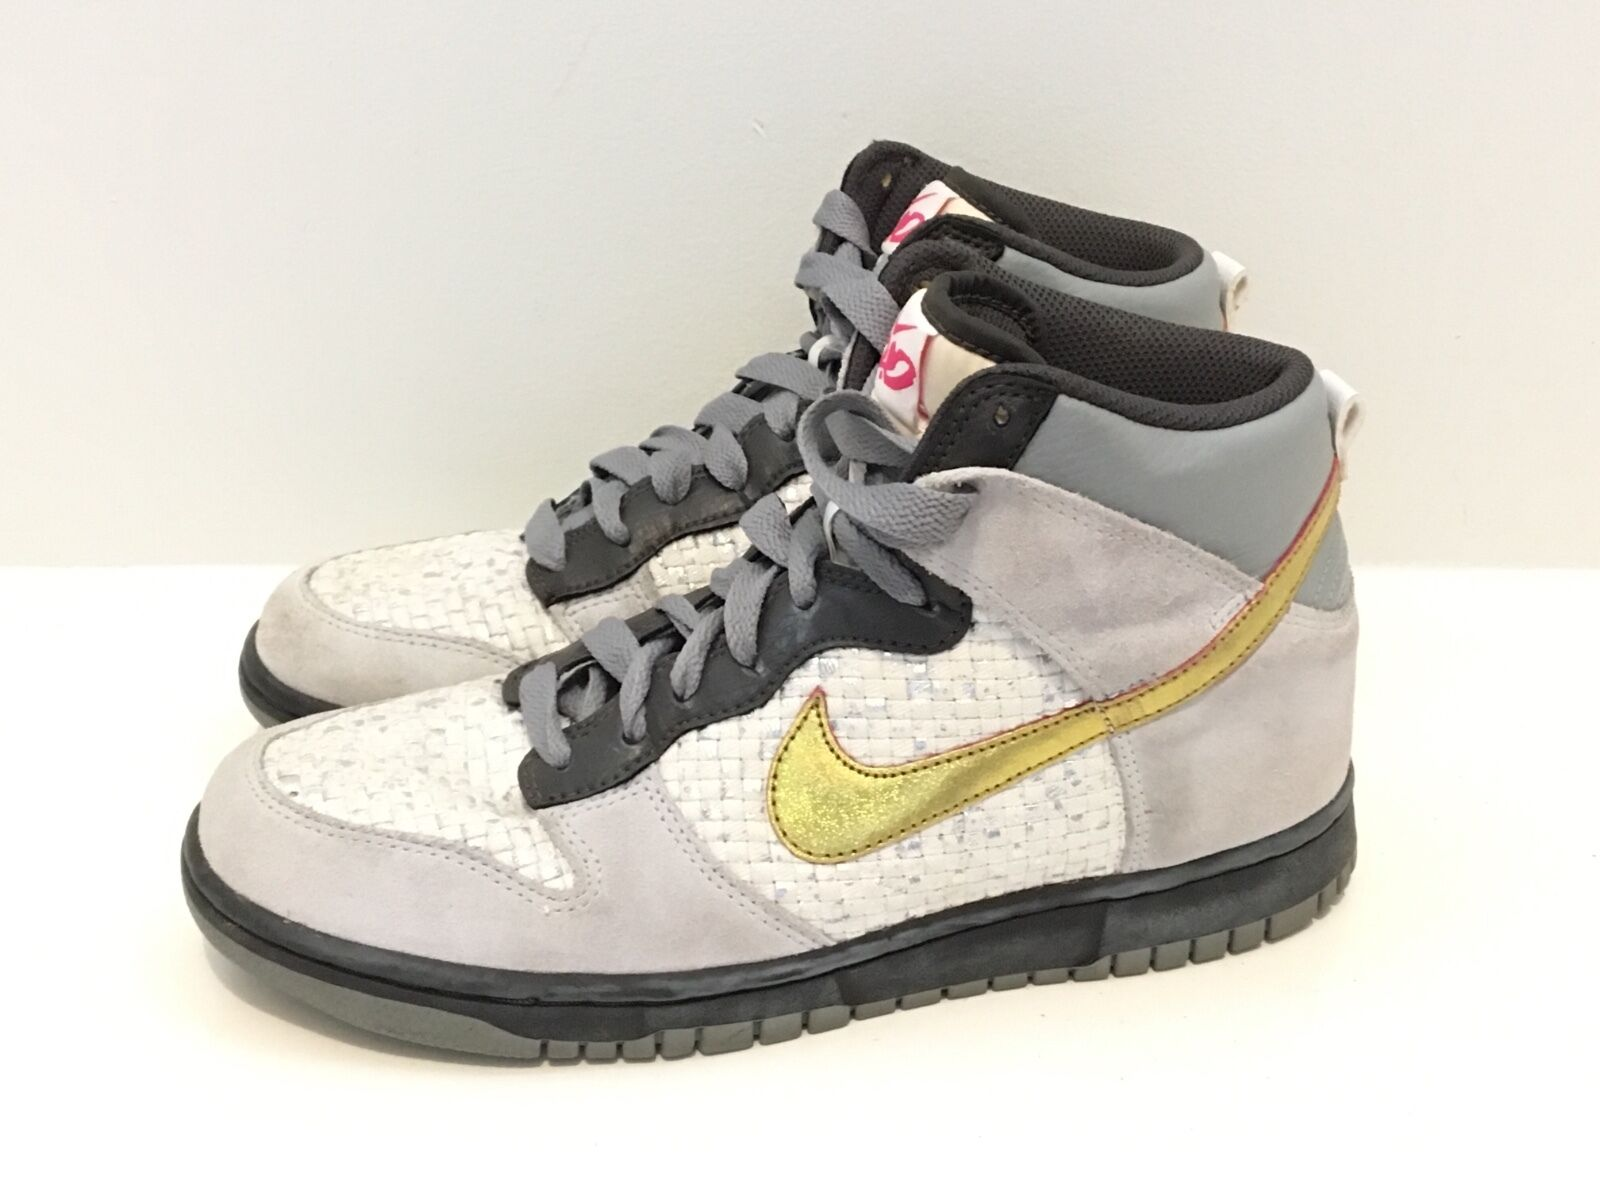 WOMEN'S 2009 NIKE AIR 6.0 342257-062 GRAY WHITE SPARKLE GOLD GLITTER SIZE 8.5 Cheap and beautiful fashion